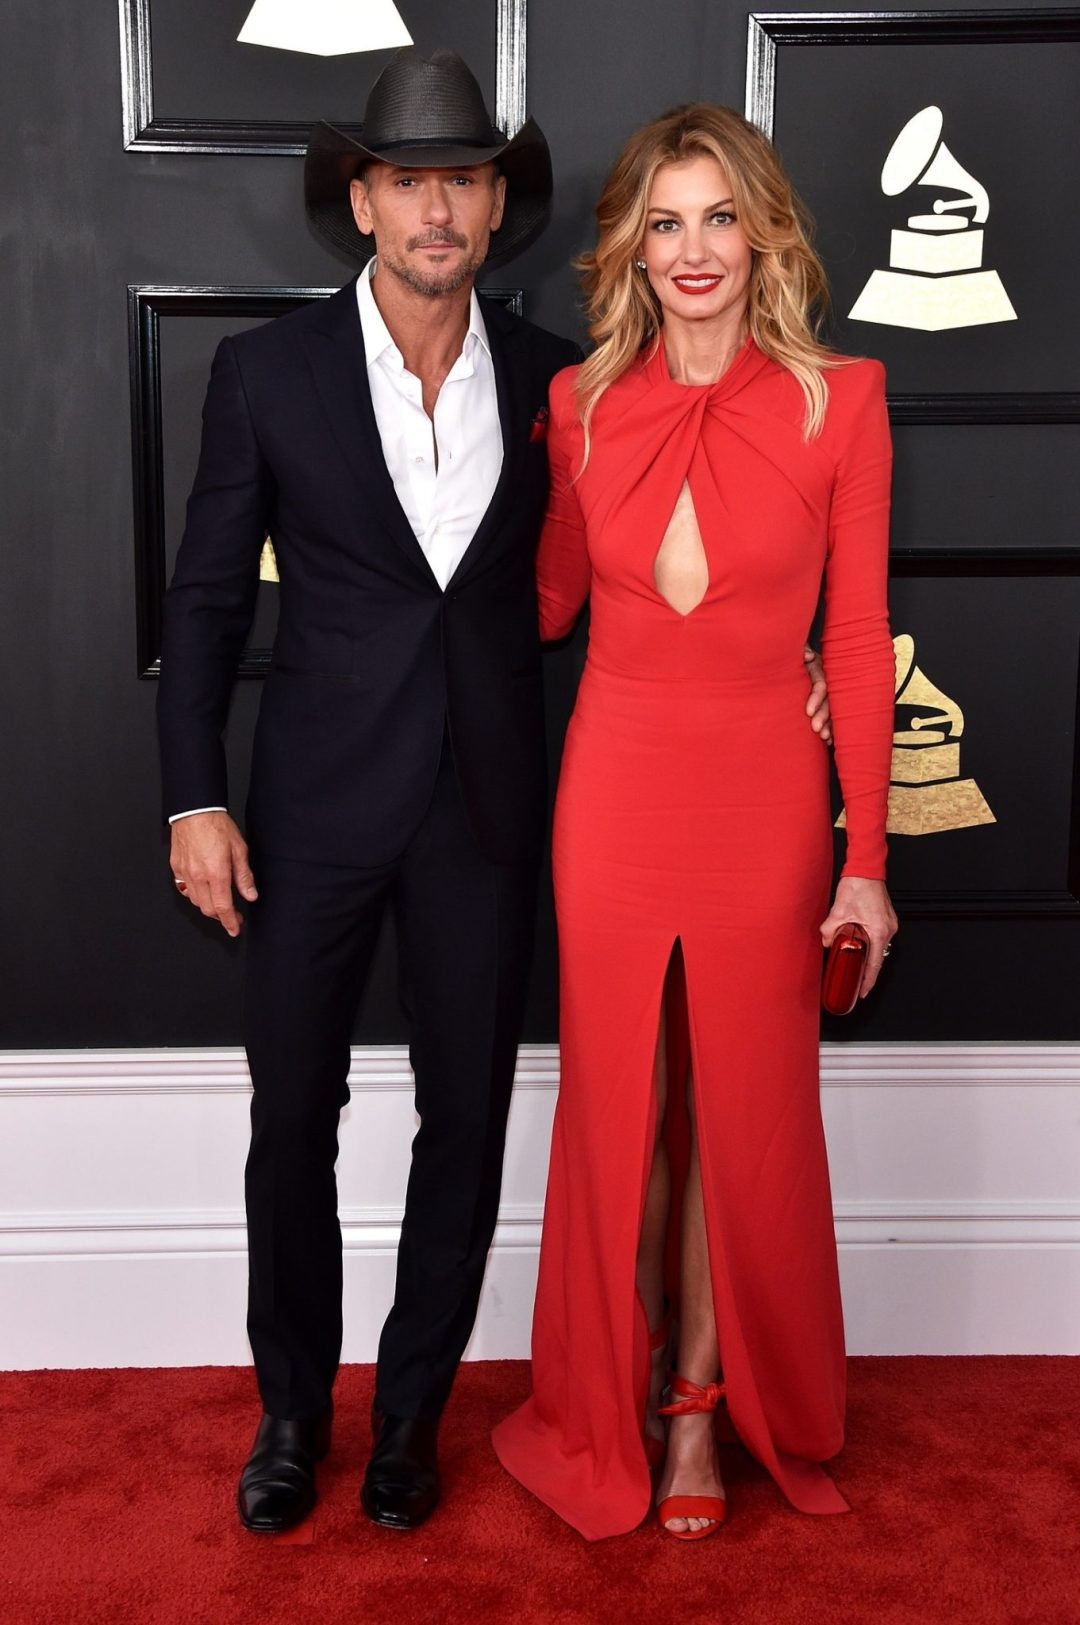 Tim McGraw and Faith Hill - Grammys Red Carpet